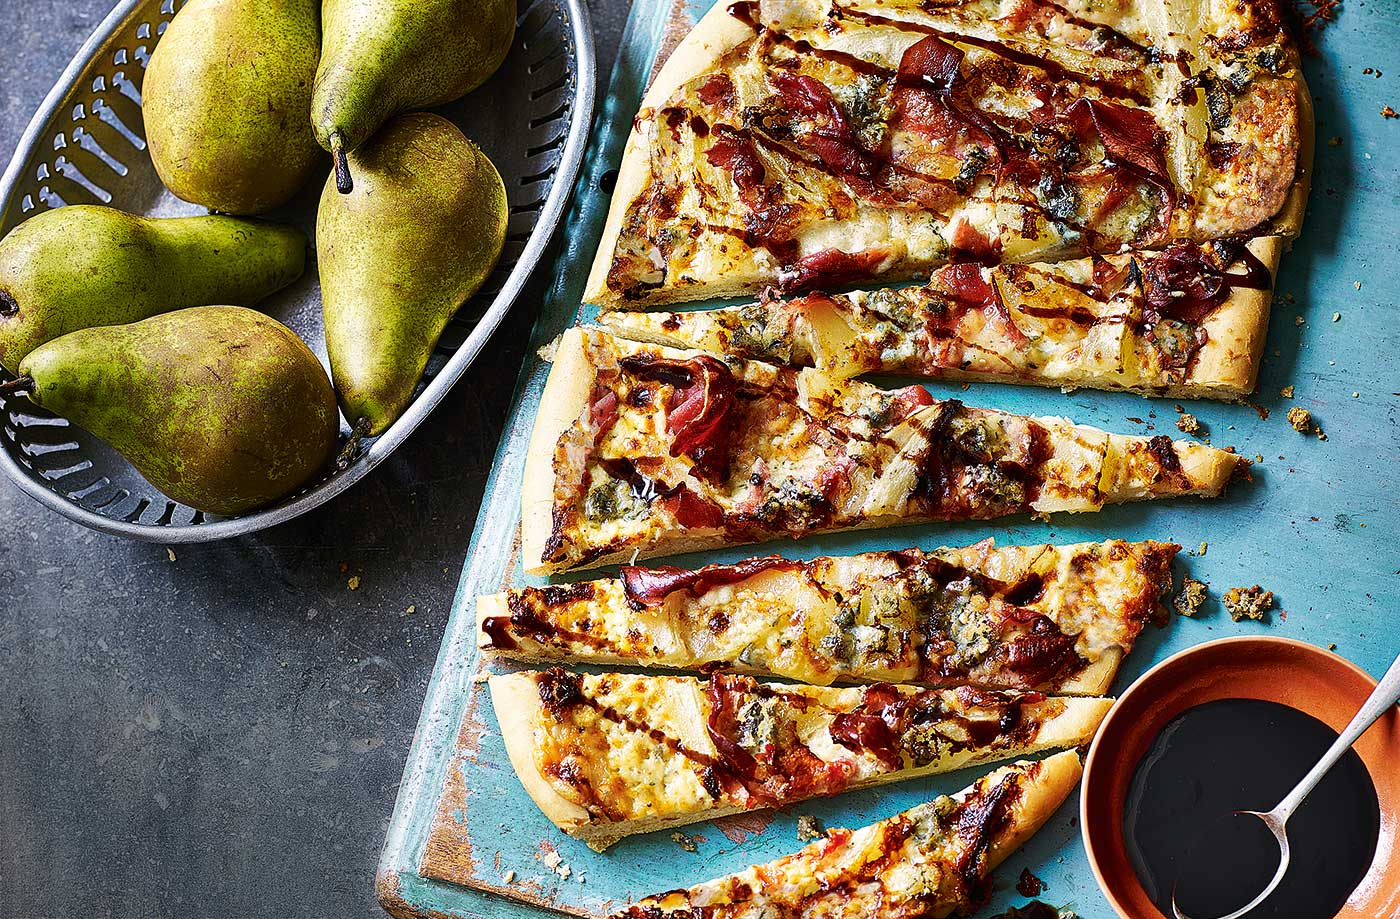 Pear, prosciutto and Gorgonzola pizza